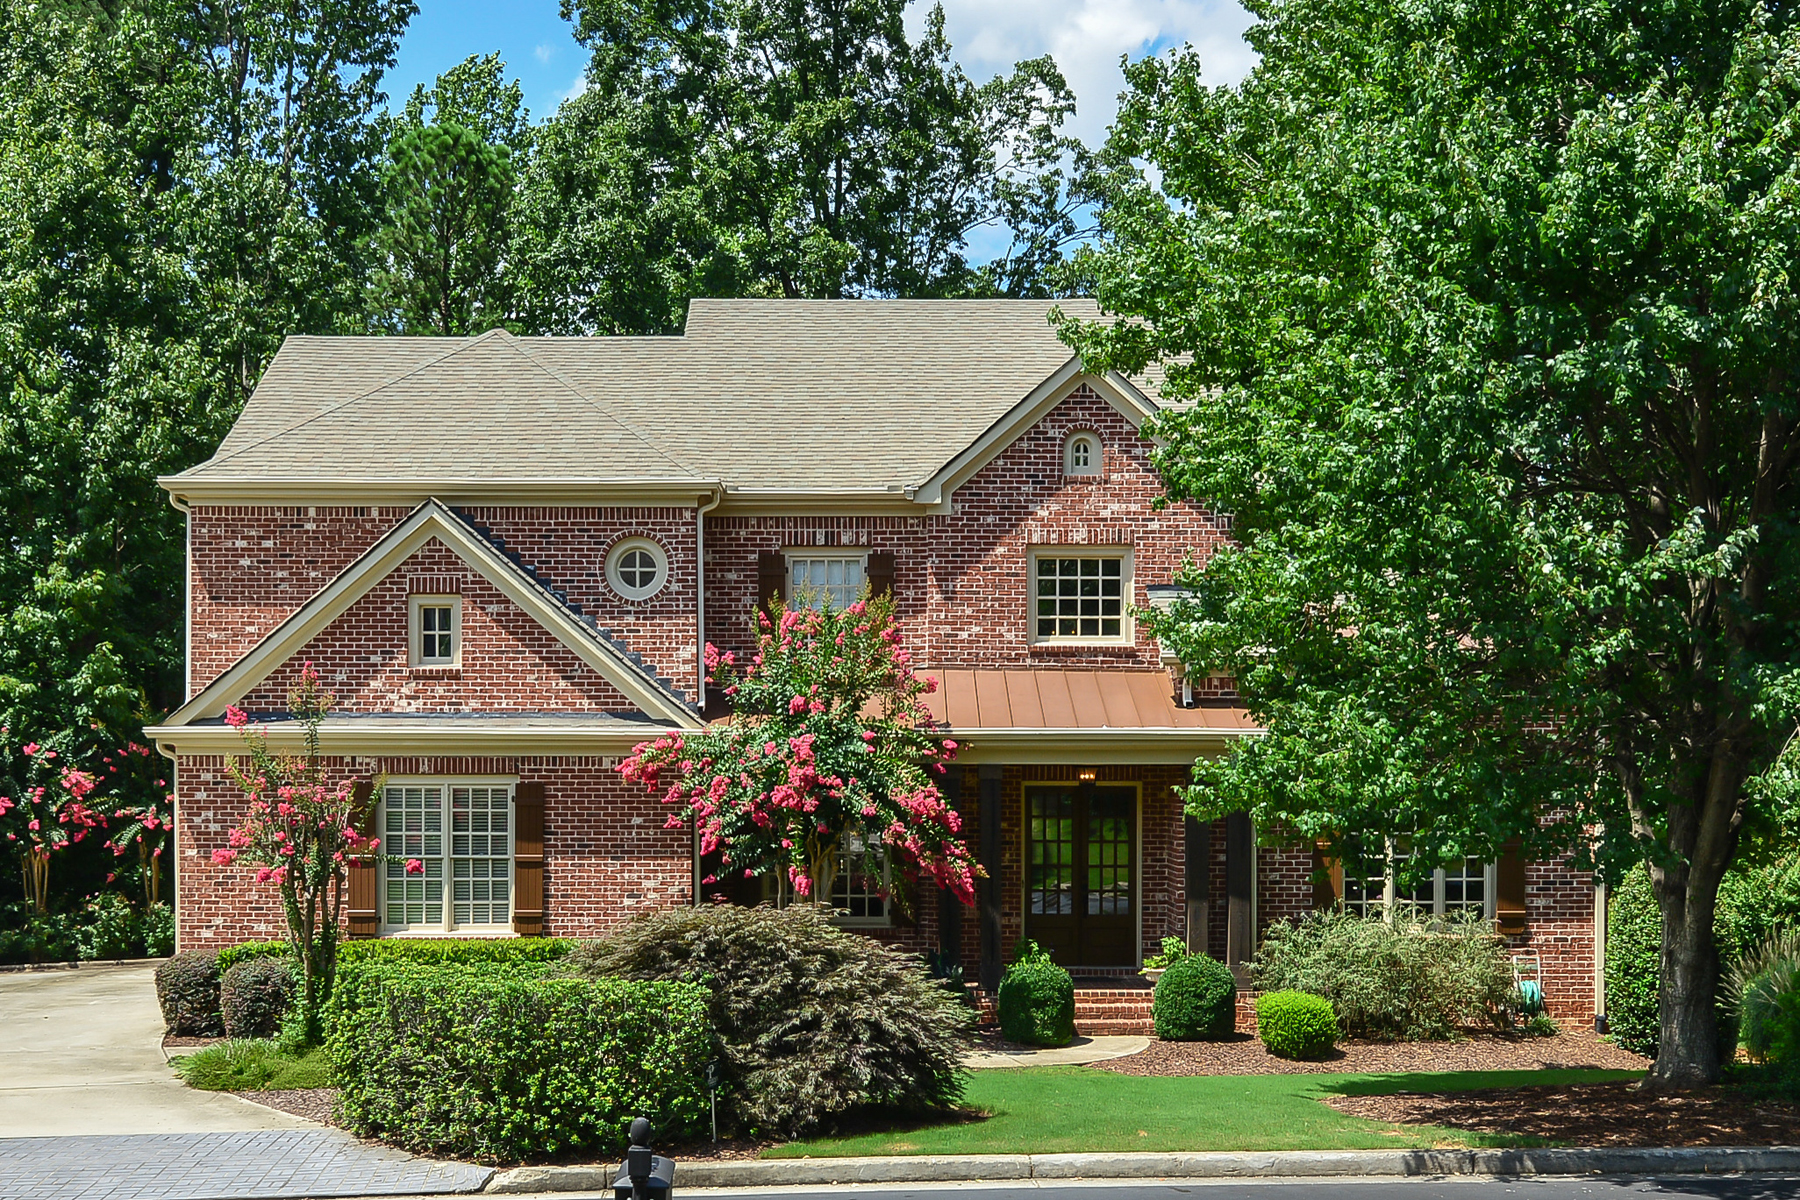 Single Family Home for Sale at Family Home On A Gated Cul-de-sac Street 245 Lake Summit View Atlanta, Georgia, 30342 United States